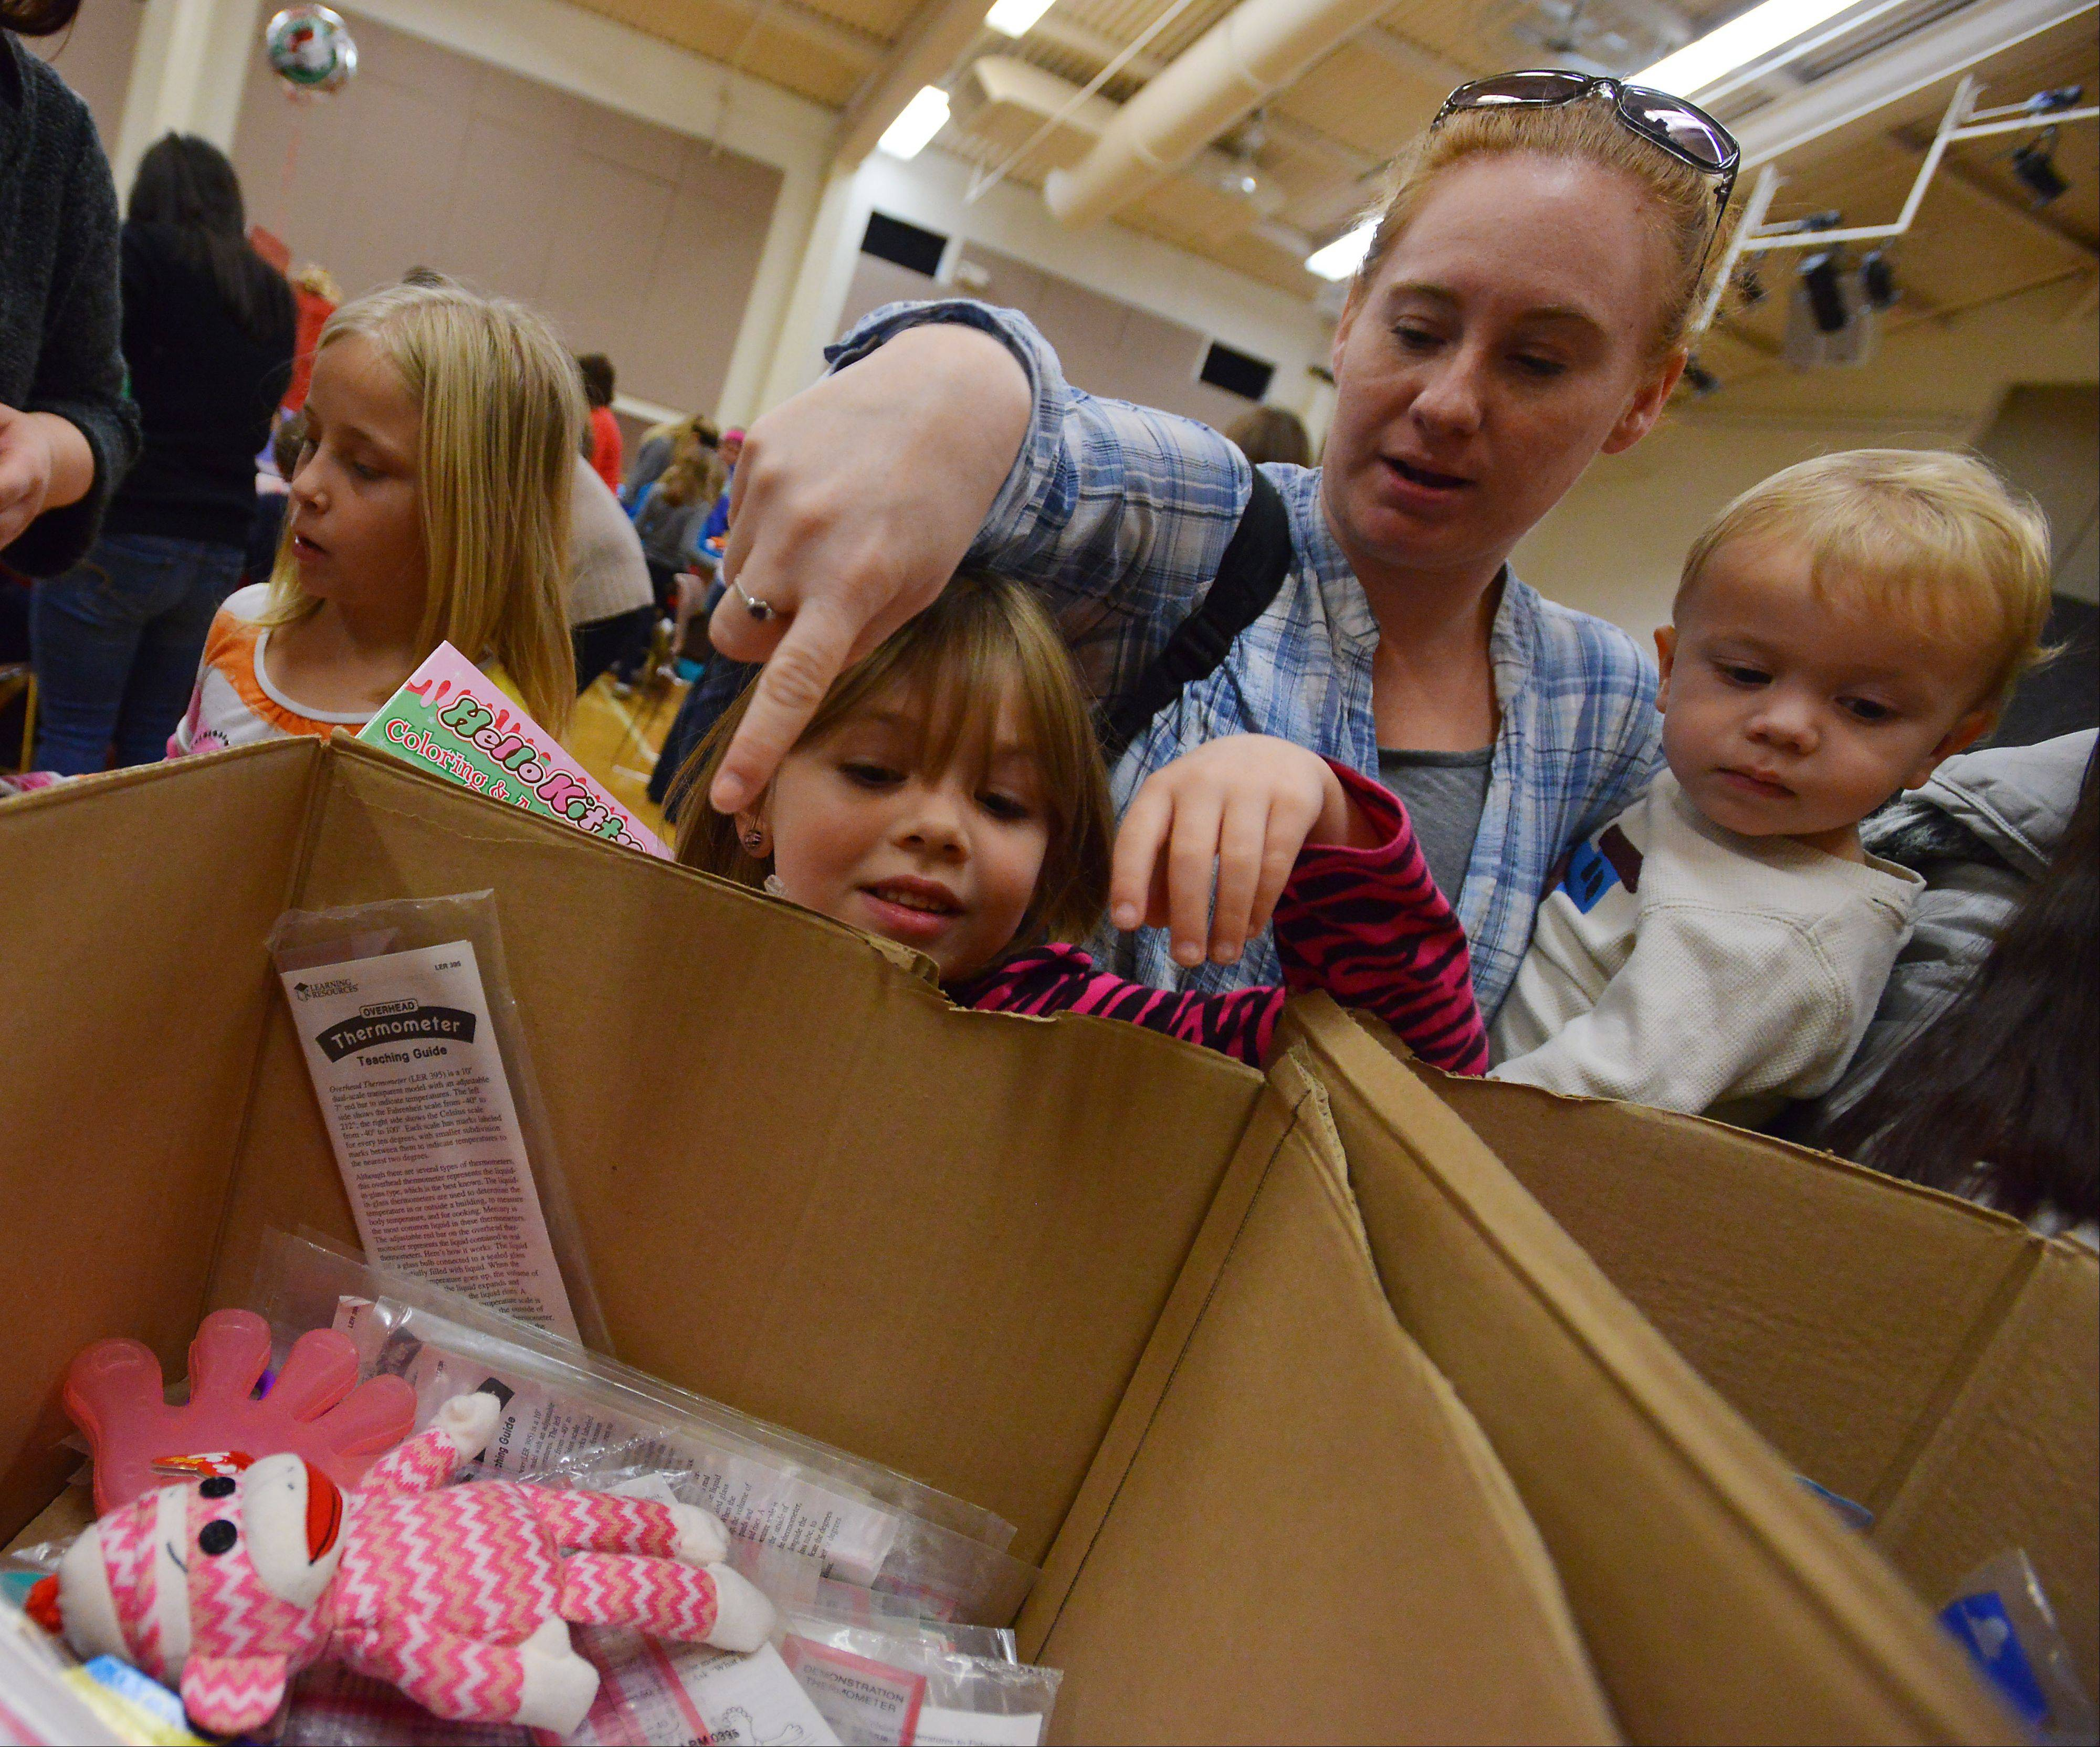 Miranda Jones, 5, of Round Lake picks out gift items to pack in a shoe box Saturday with her 2-year-old brother, Shane, and her mom, Melissa Jones. The family packed gift boxes to be sent overseas to children in need as part of Operation Christmas Child at Immanuel Church in Gurnee.